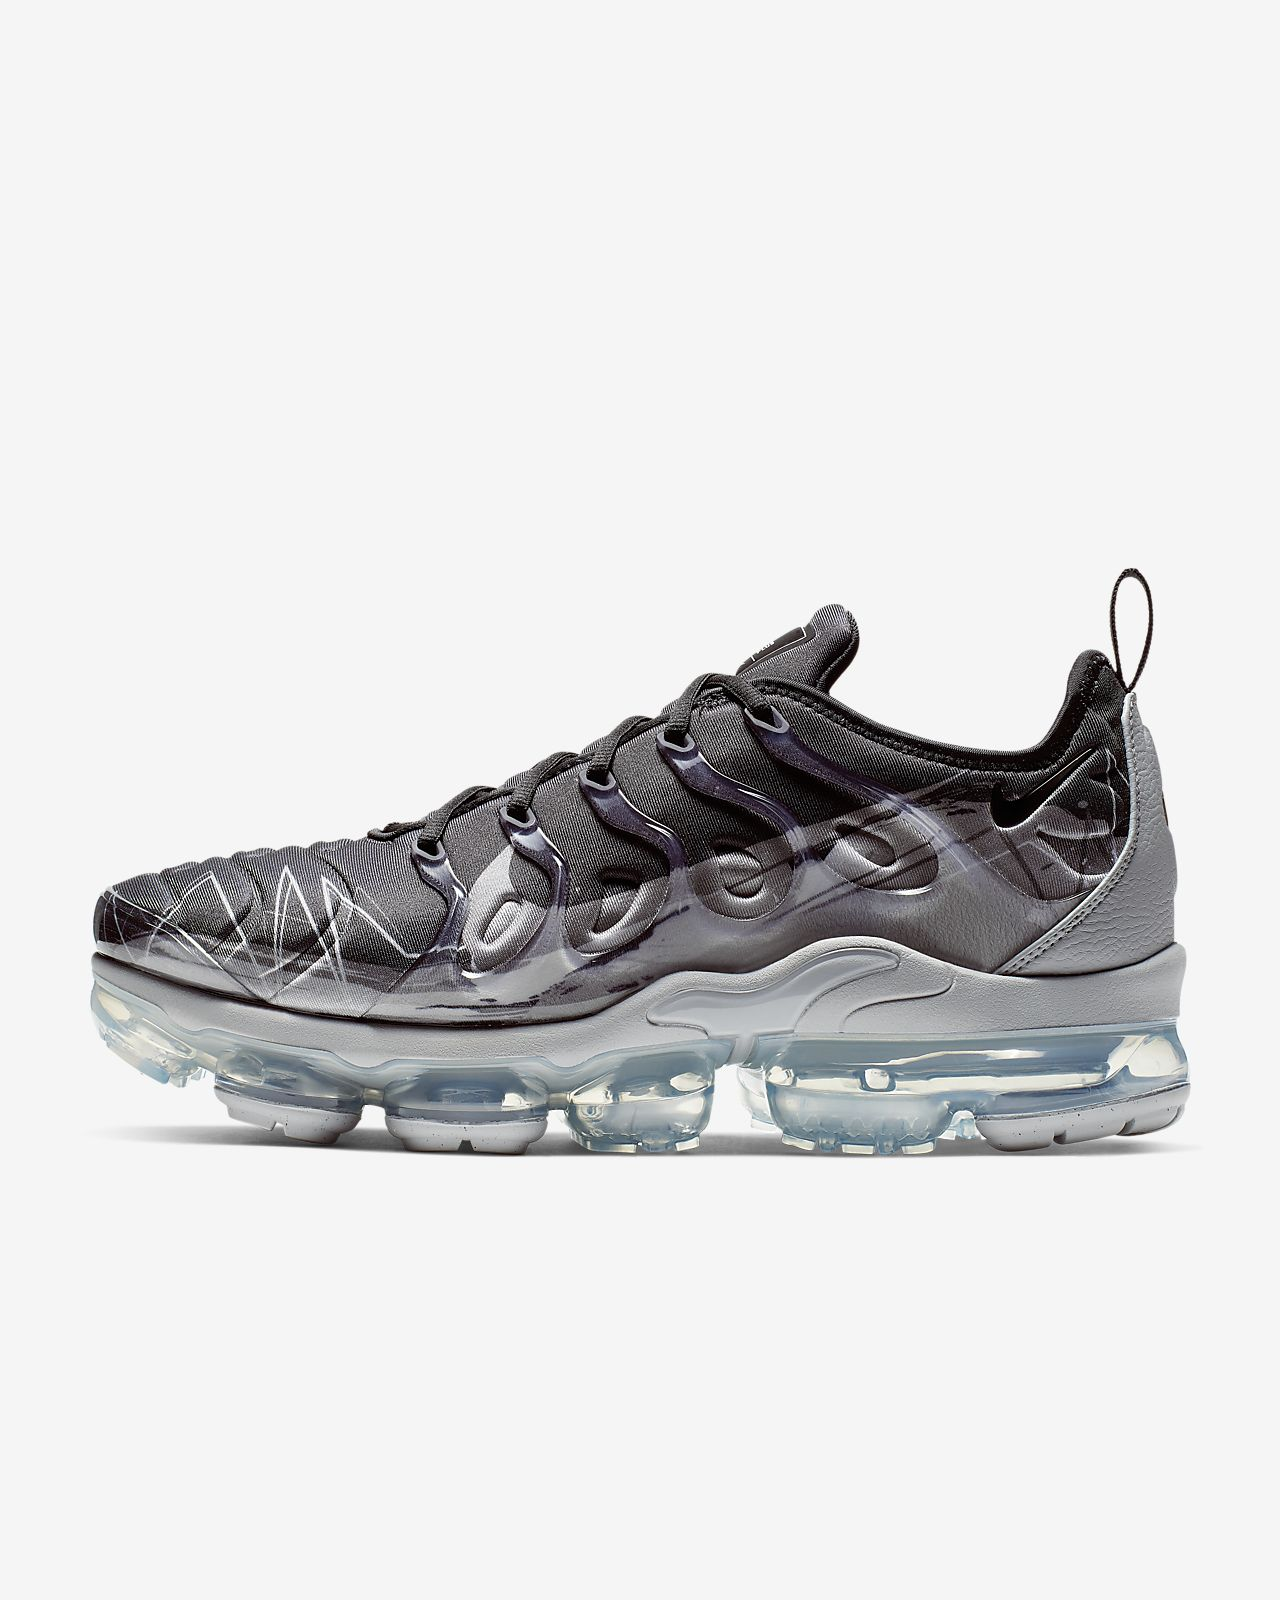 finest selection eee7b 9b50a ... Nike Air VaporMax Plus-sko til mænd